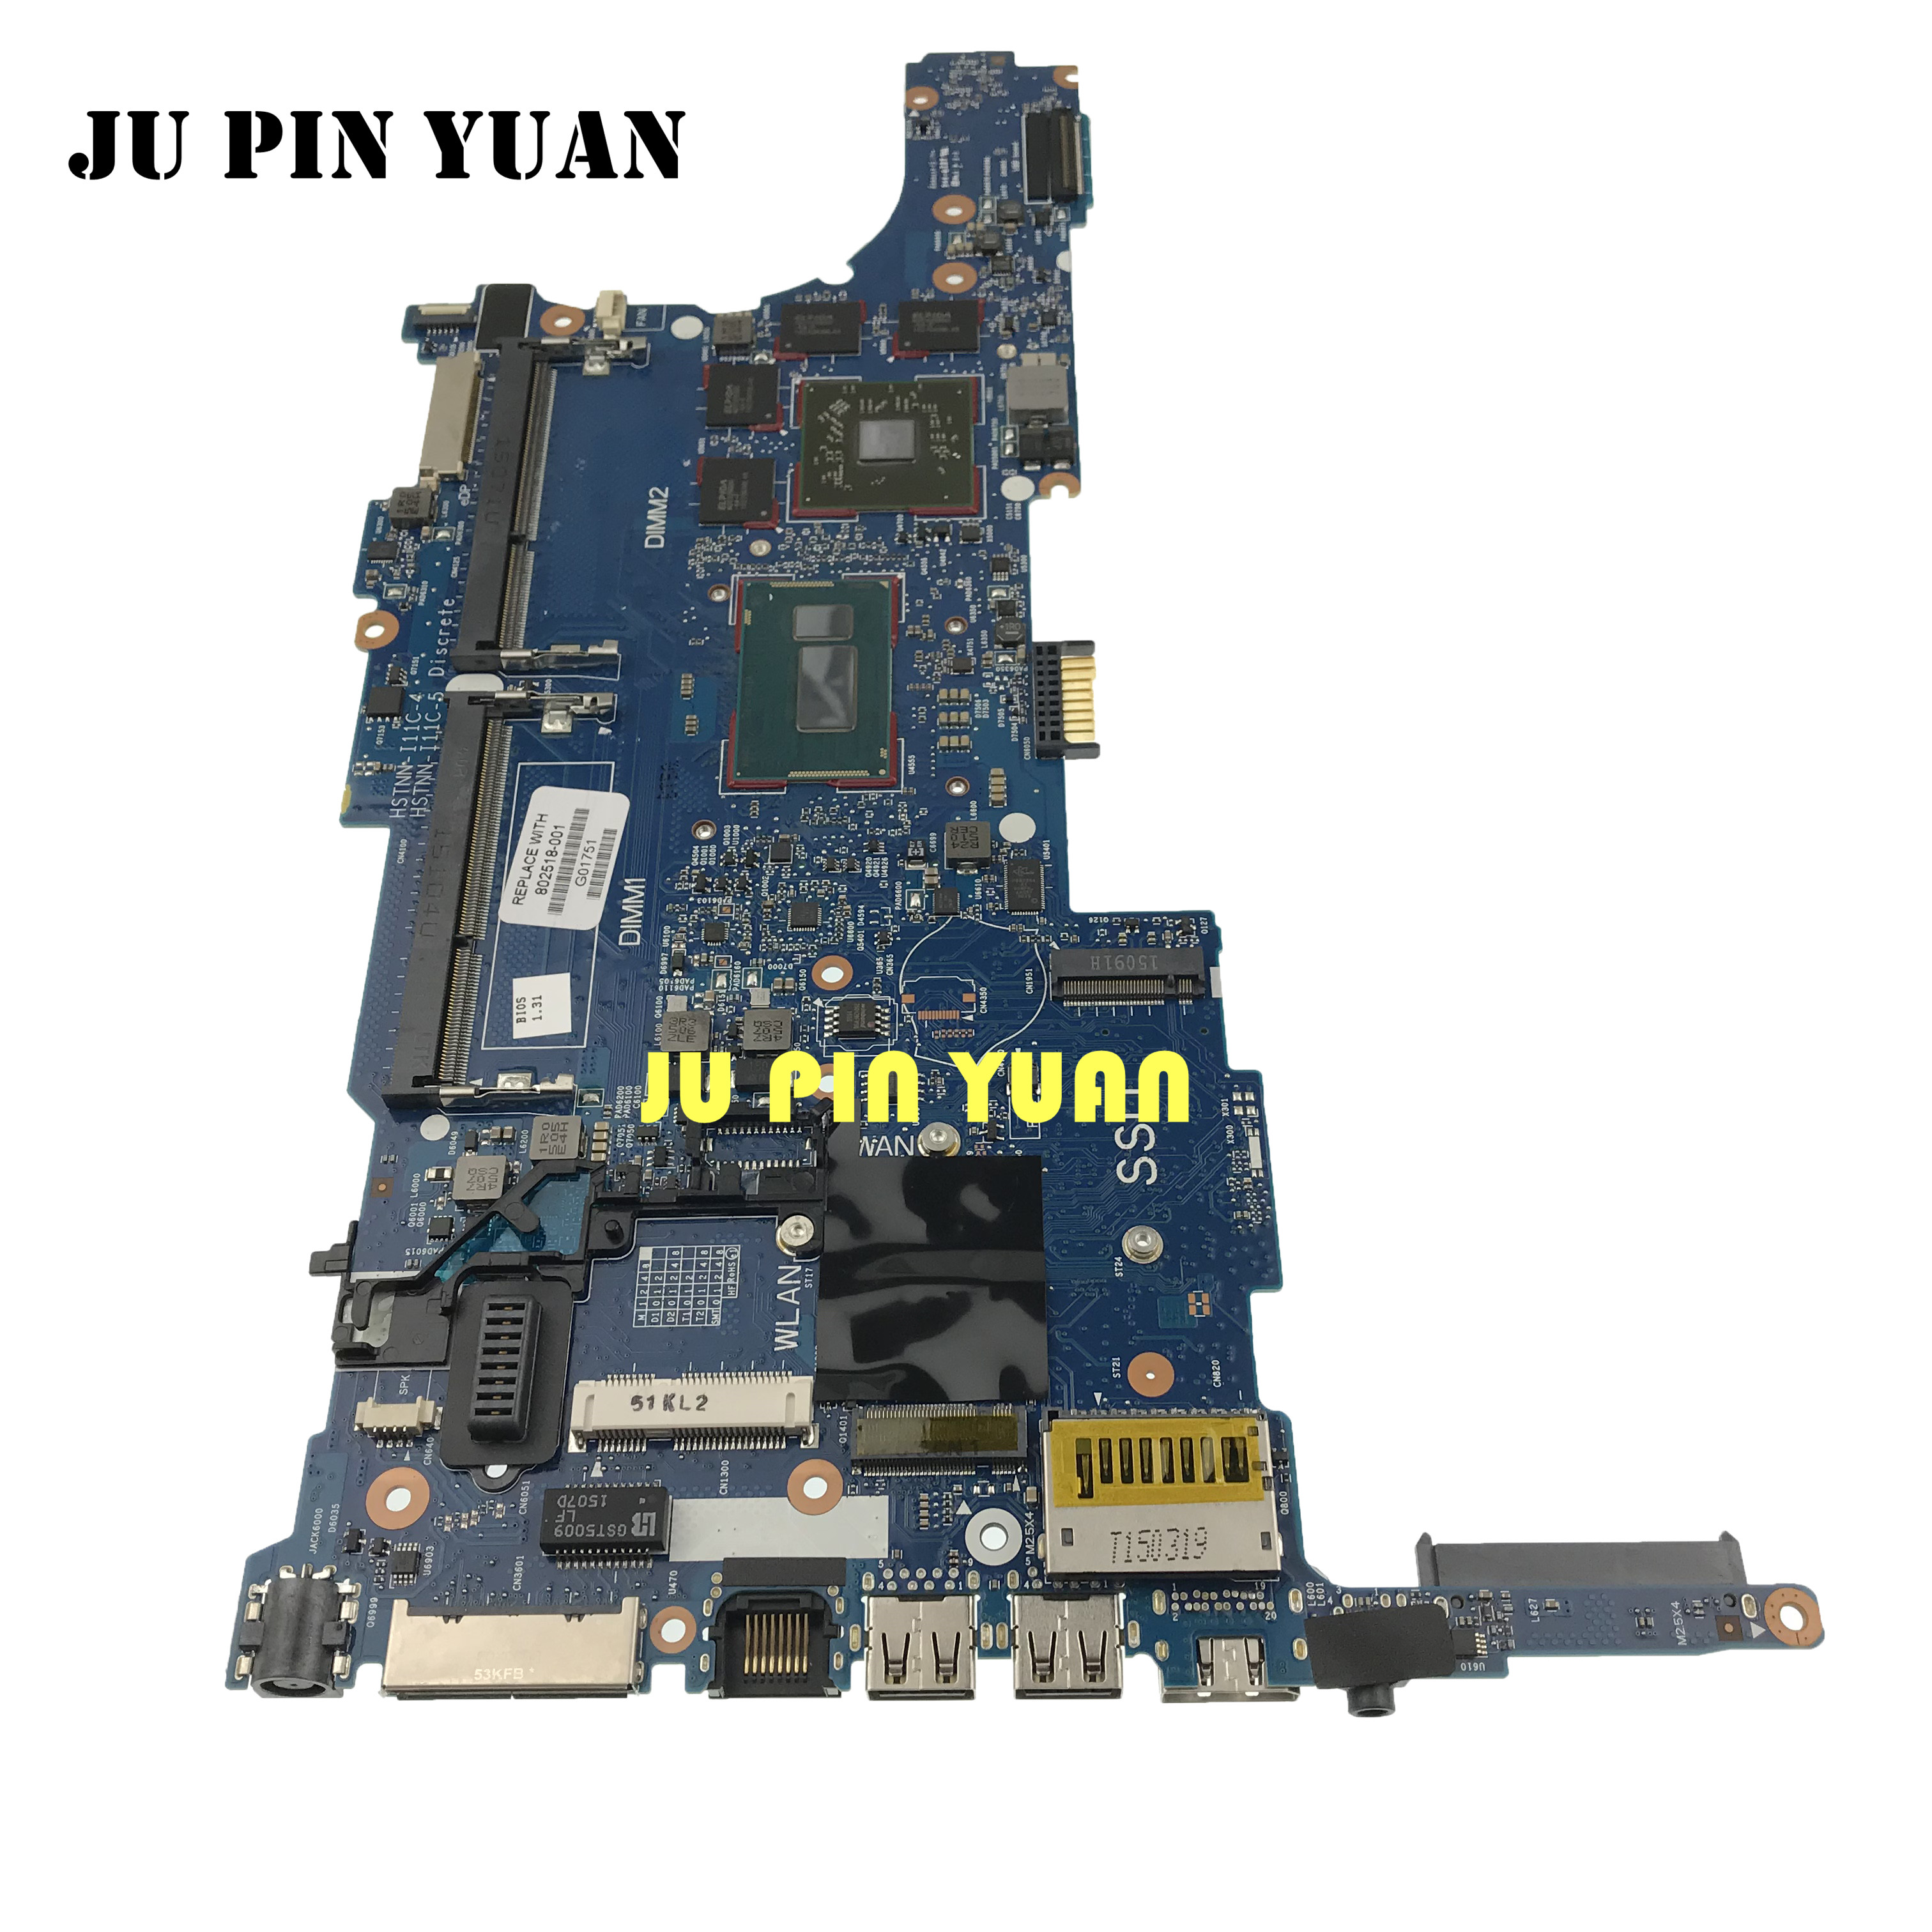 802518-001 802518-501 802518-601 6050A2559101-MB-A03 for hp Elitebook 840 G1 850 G1 laptop motherboard with <font><b>i7</b></font>-<font><b>4600U</b></font> image